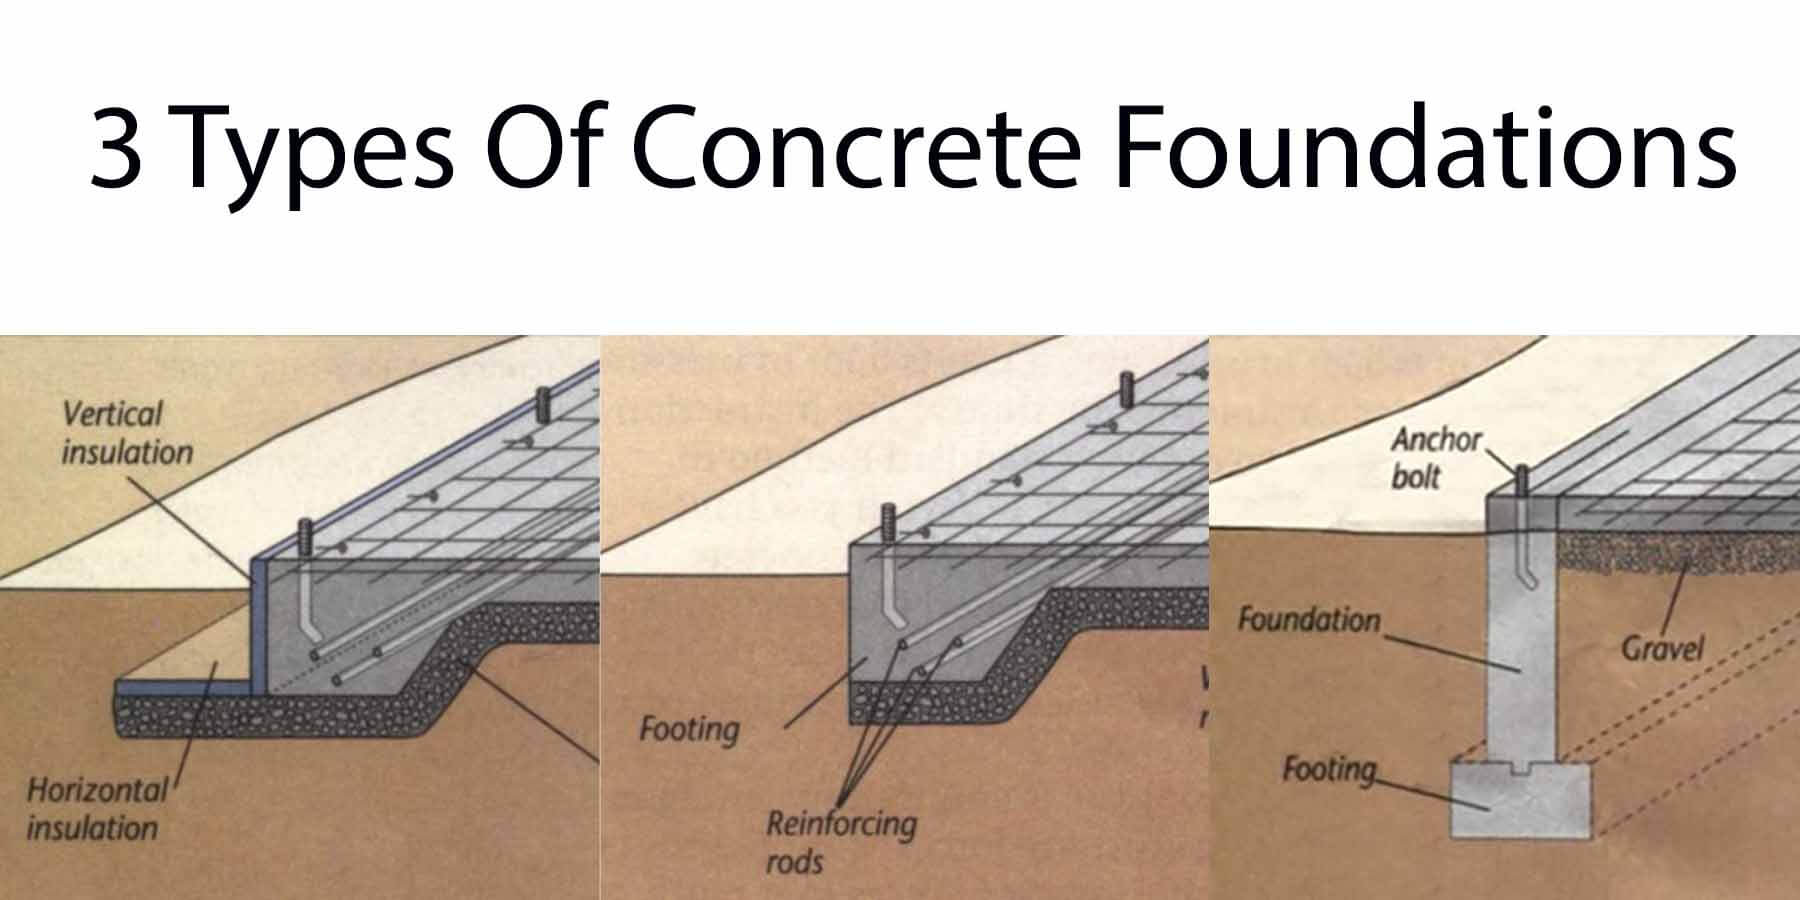 3 Types Of Concrete Foundations - Engineering Discoveries